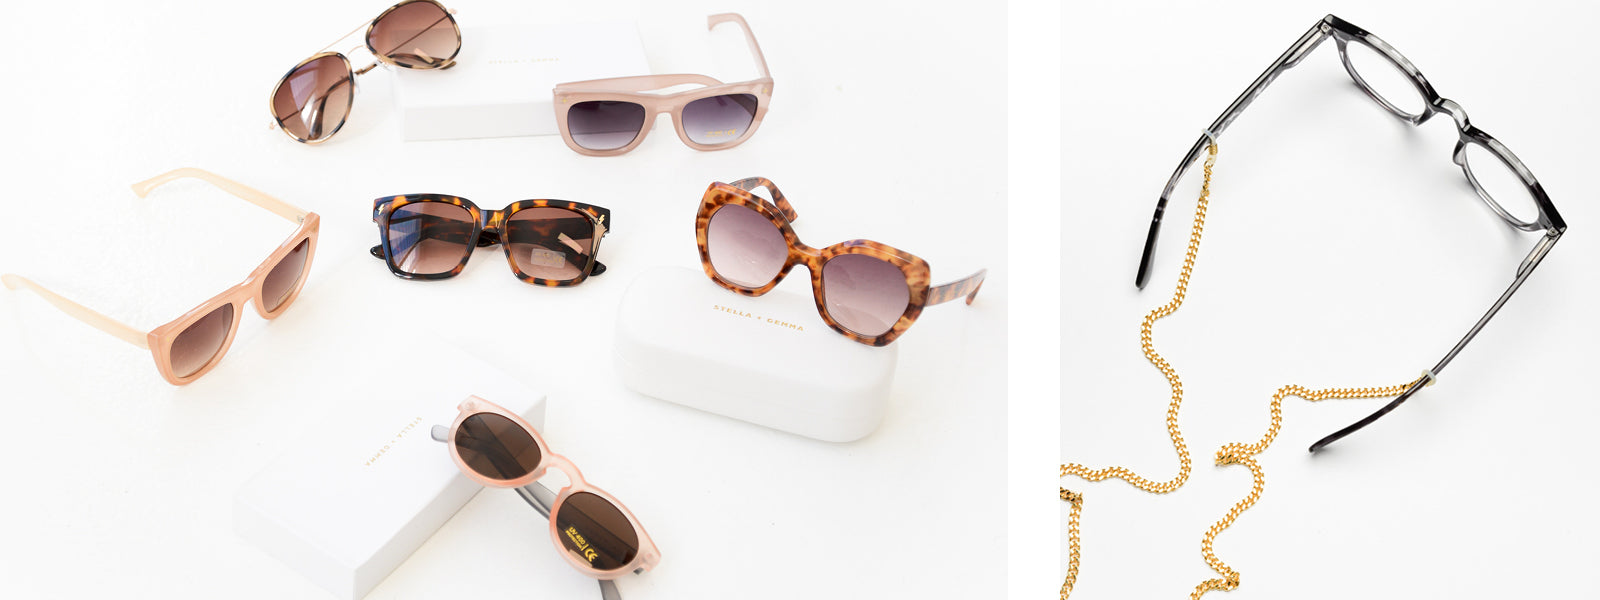 Sunglasses and glasses chains for travel